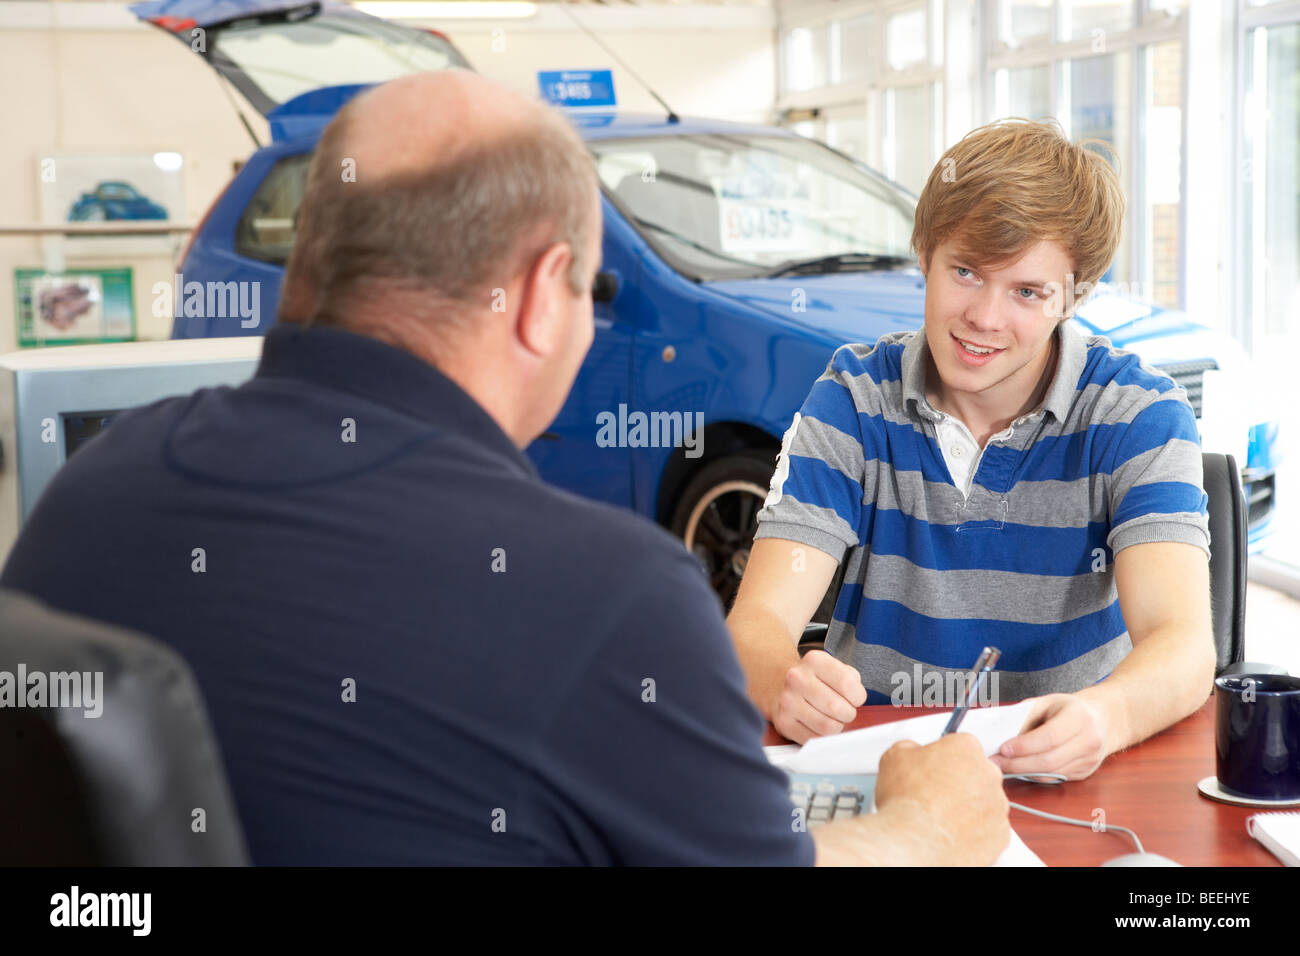 Young man filling in paperwork in car showroom - Stock Image